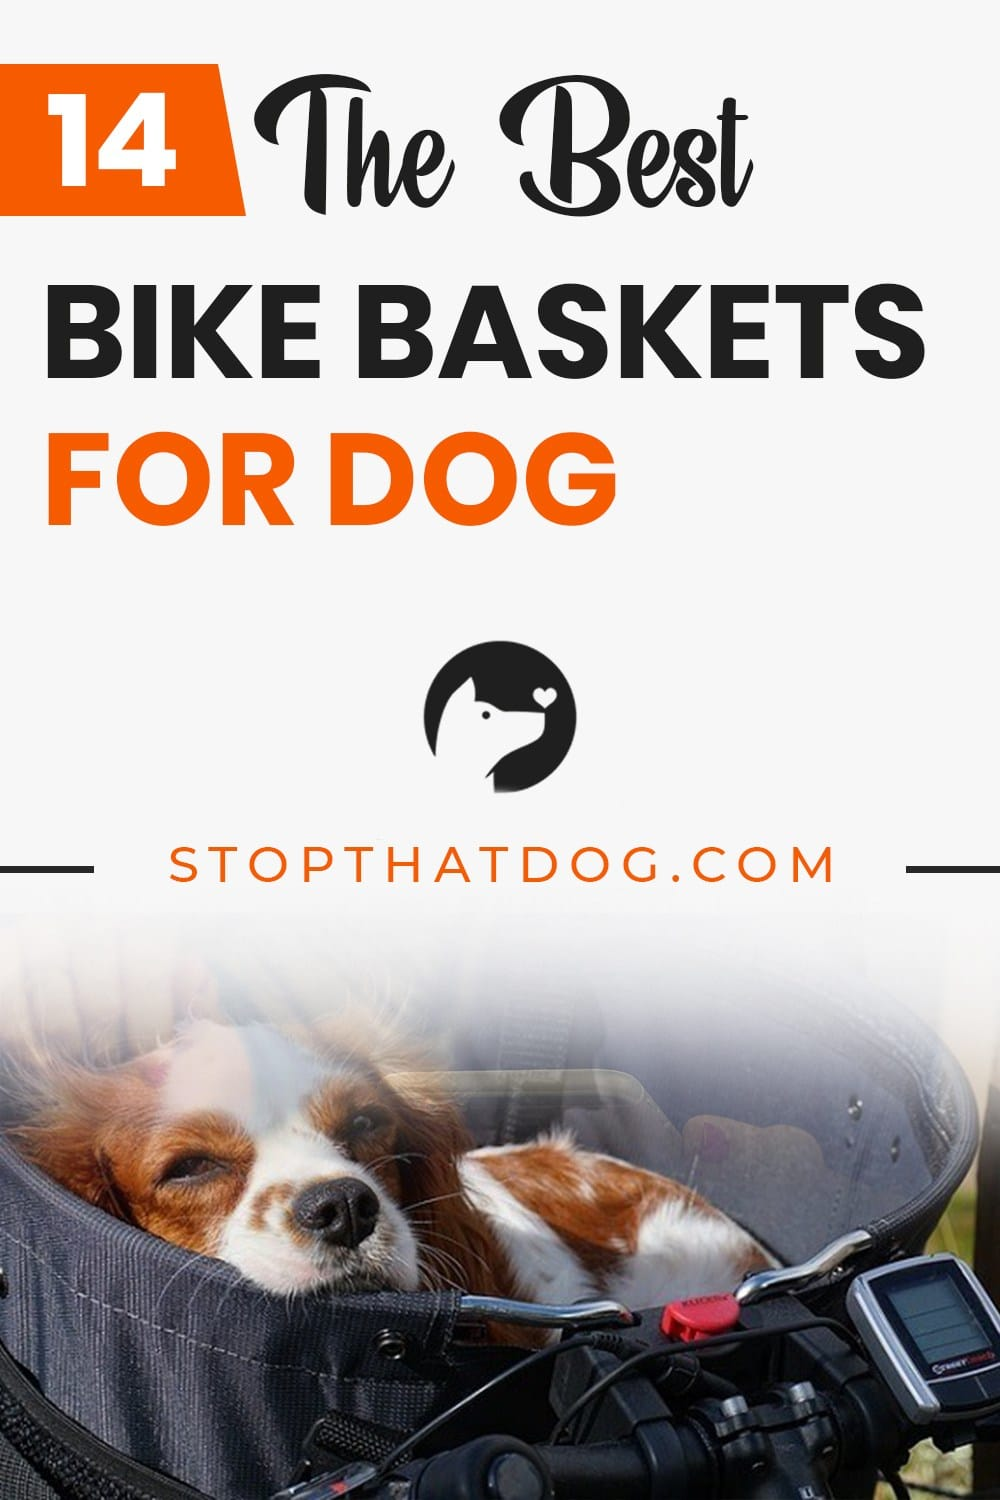 Want to ride a bike with your dog? If so, these bike baskets for dogs are a great buy! This guide highlights the best options on the market right now.